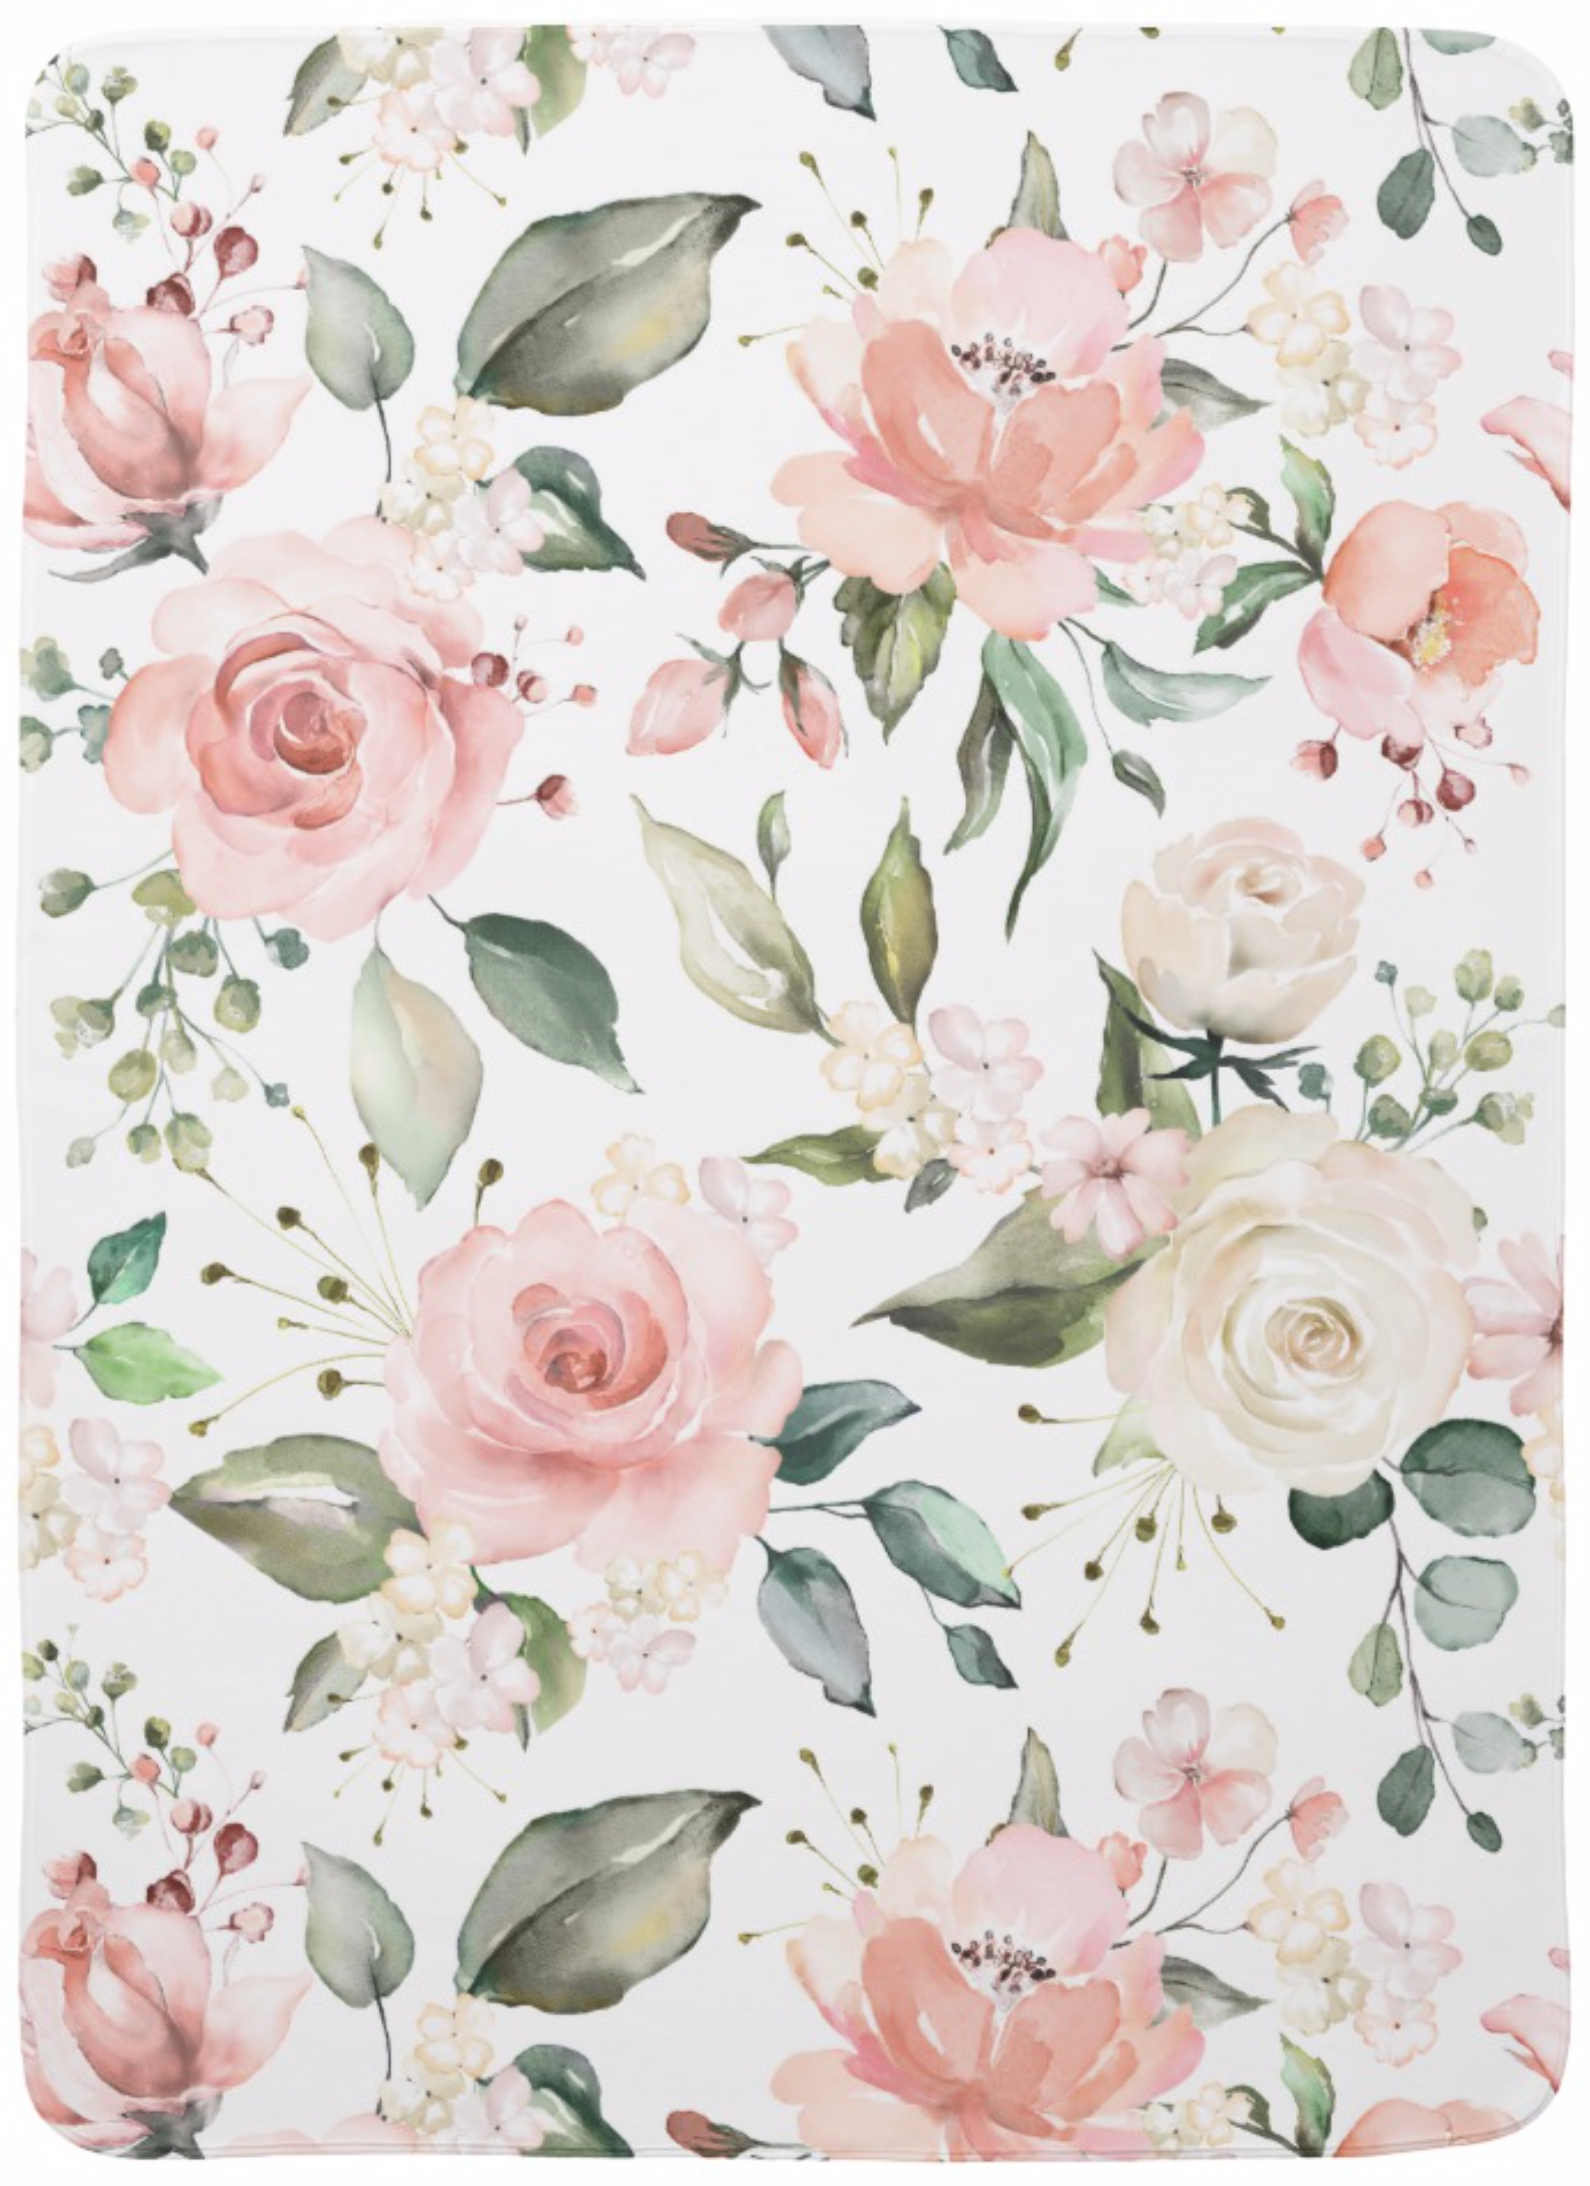 Sunny Floral Pastel Watercolor Flowers Baby Blanket Zazzle Com